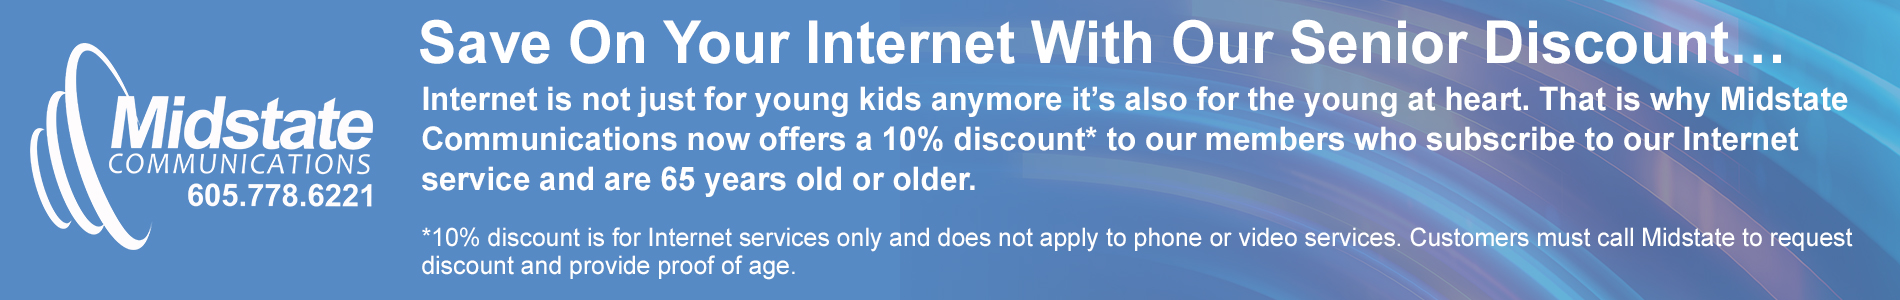 Senior Discount for Internet